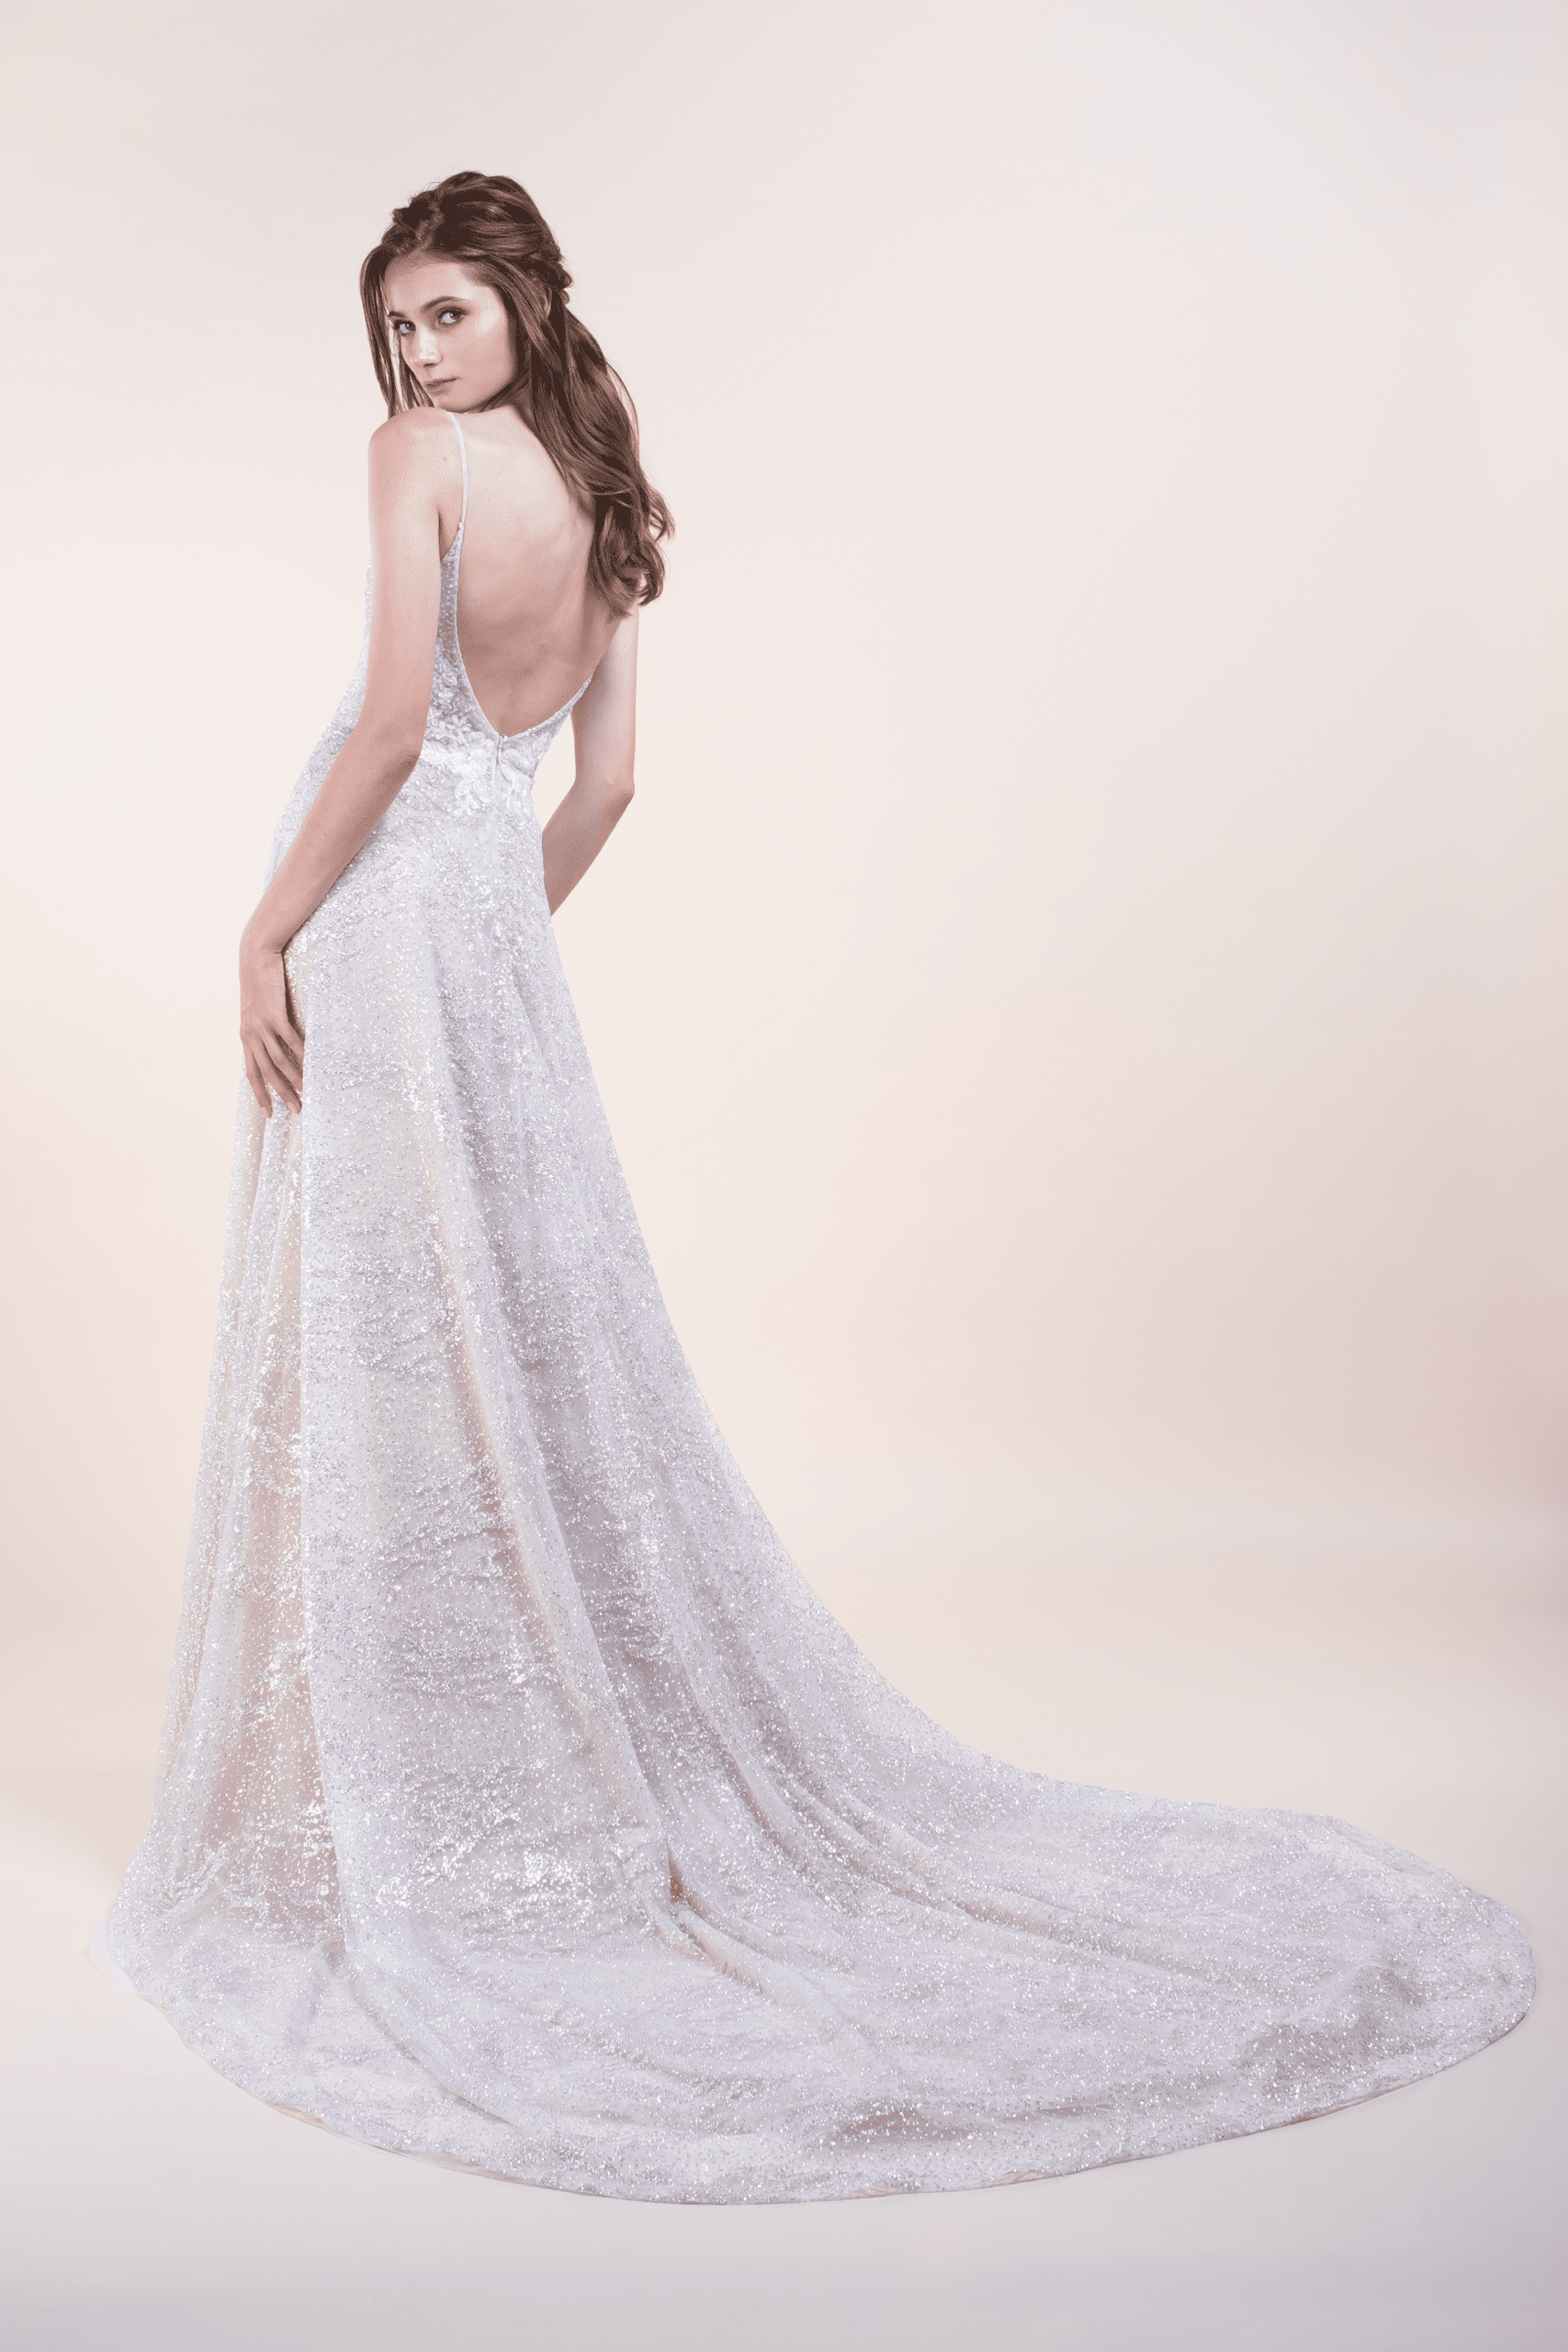 Astrid-affordable-Evening-Dress-for-rent-in-Singapore